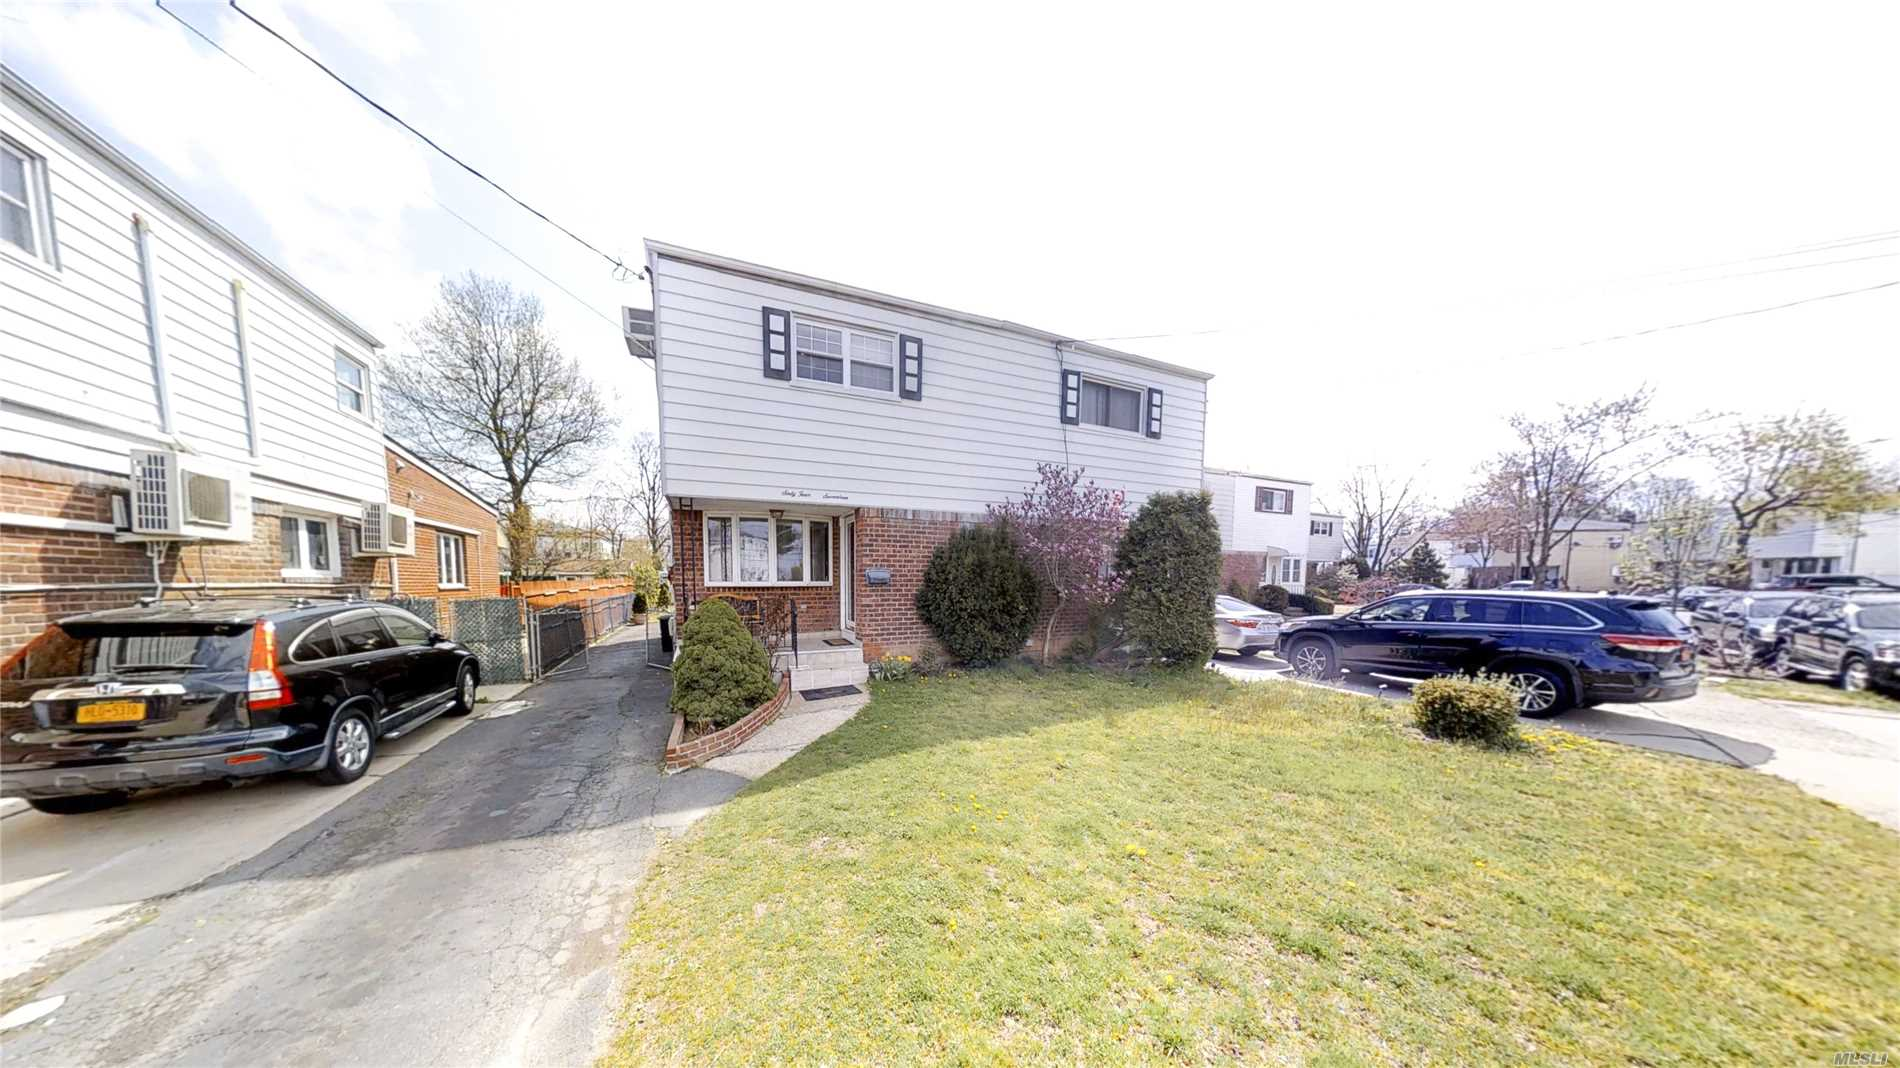 Move in condition, High-quality wood floor, Large back yard with deck, finished basement with laundry room. Quite neighborhood steps away to Main St,  Minutes to Restaurants, Supermarket, and downtown Flushing. Easy access to 495 expwy